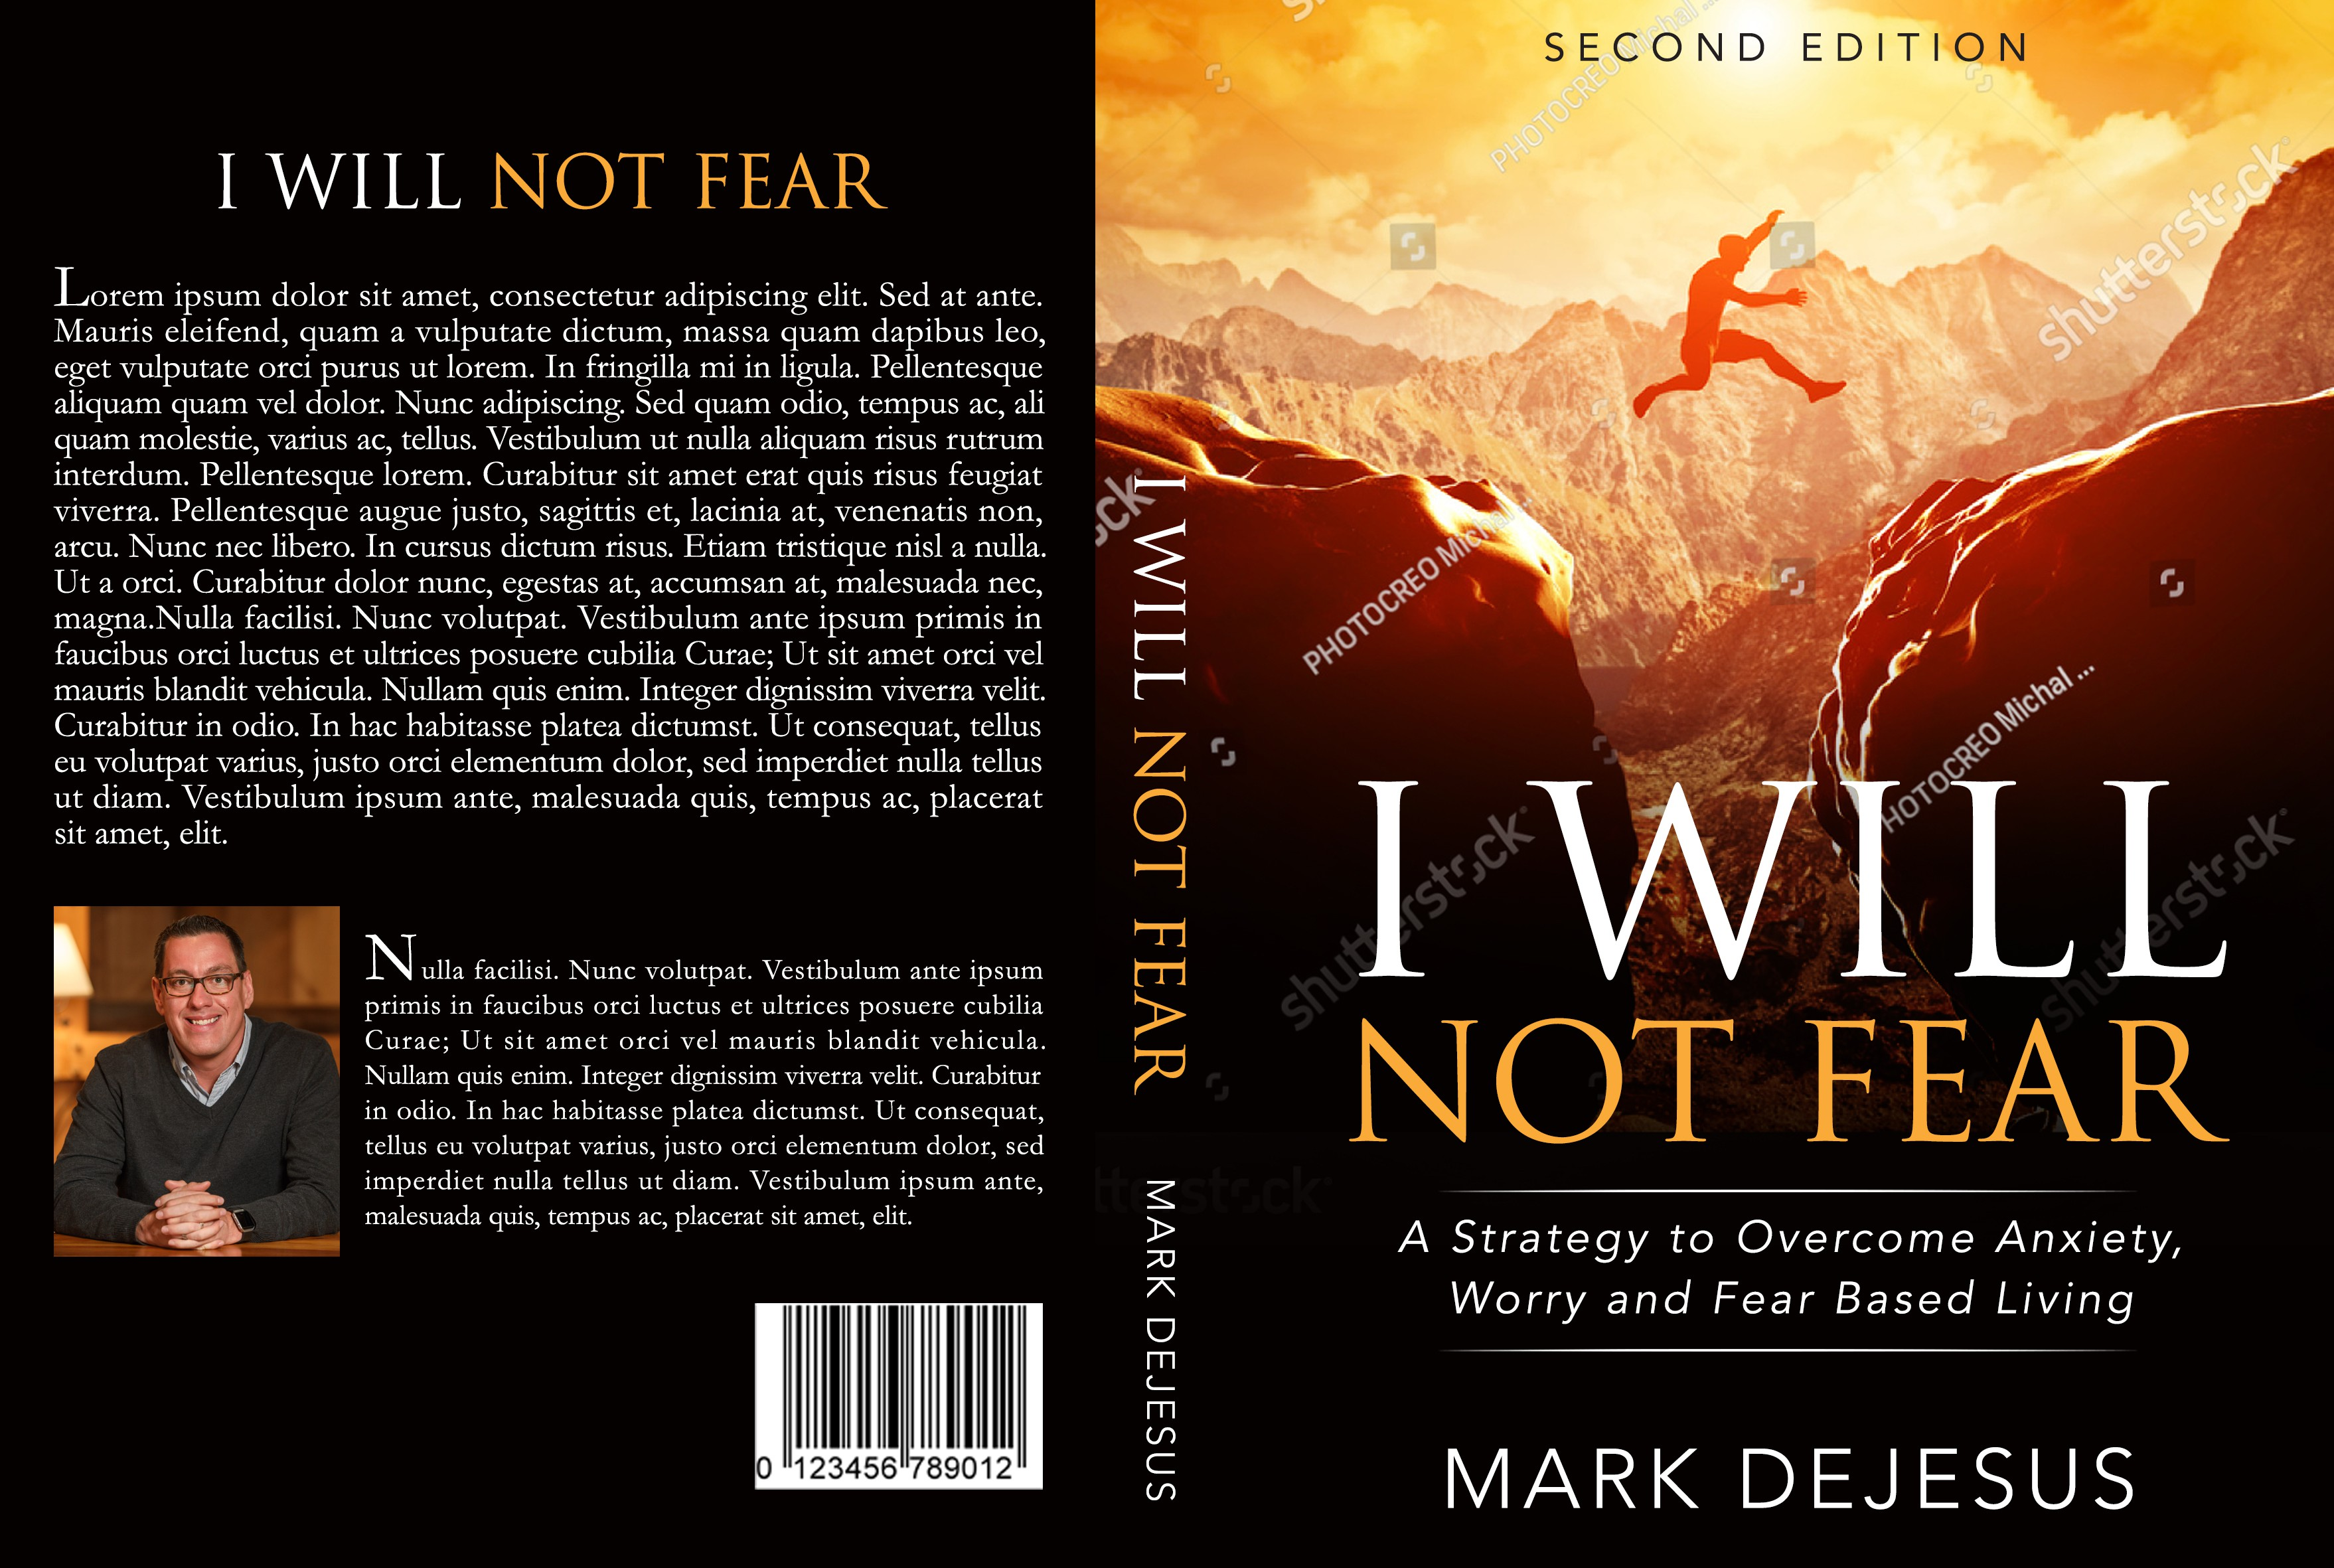 Help Me Design a Cover That Will Help People Overcome Fear and Live Confidently